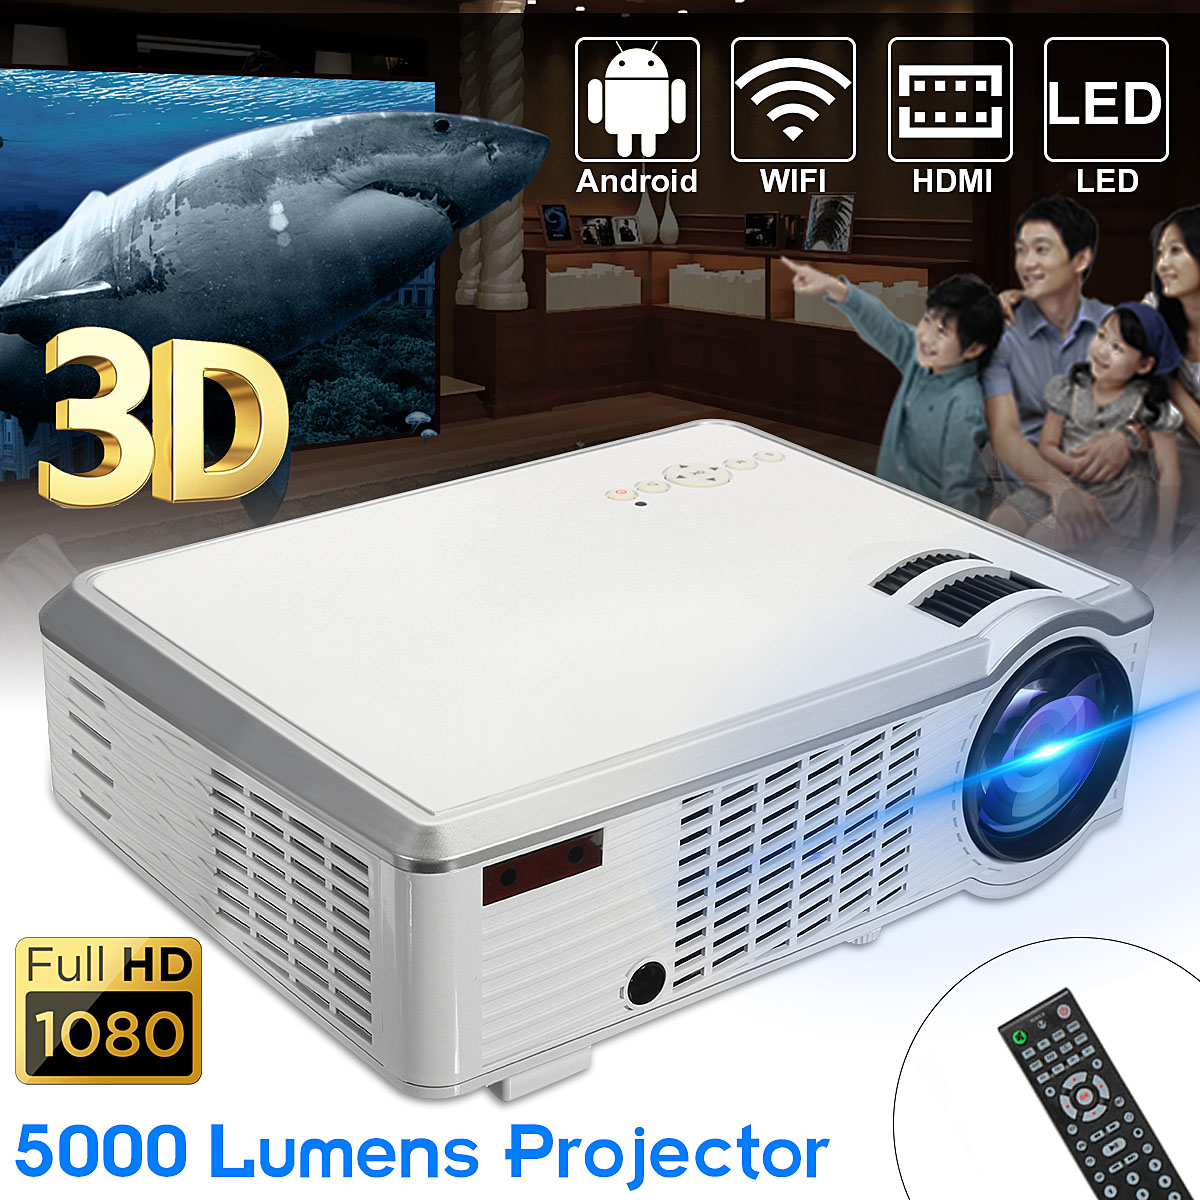 5000 Lumens 1080P Full HD 3D LED Projector Android 4.4 Home Theater Cinema Multimedia Wireless HDMI USB AV with Remote Control стоимость